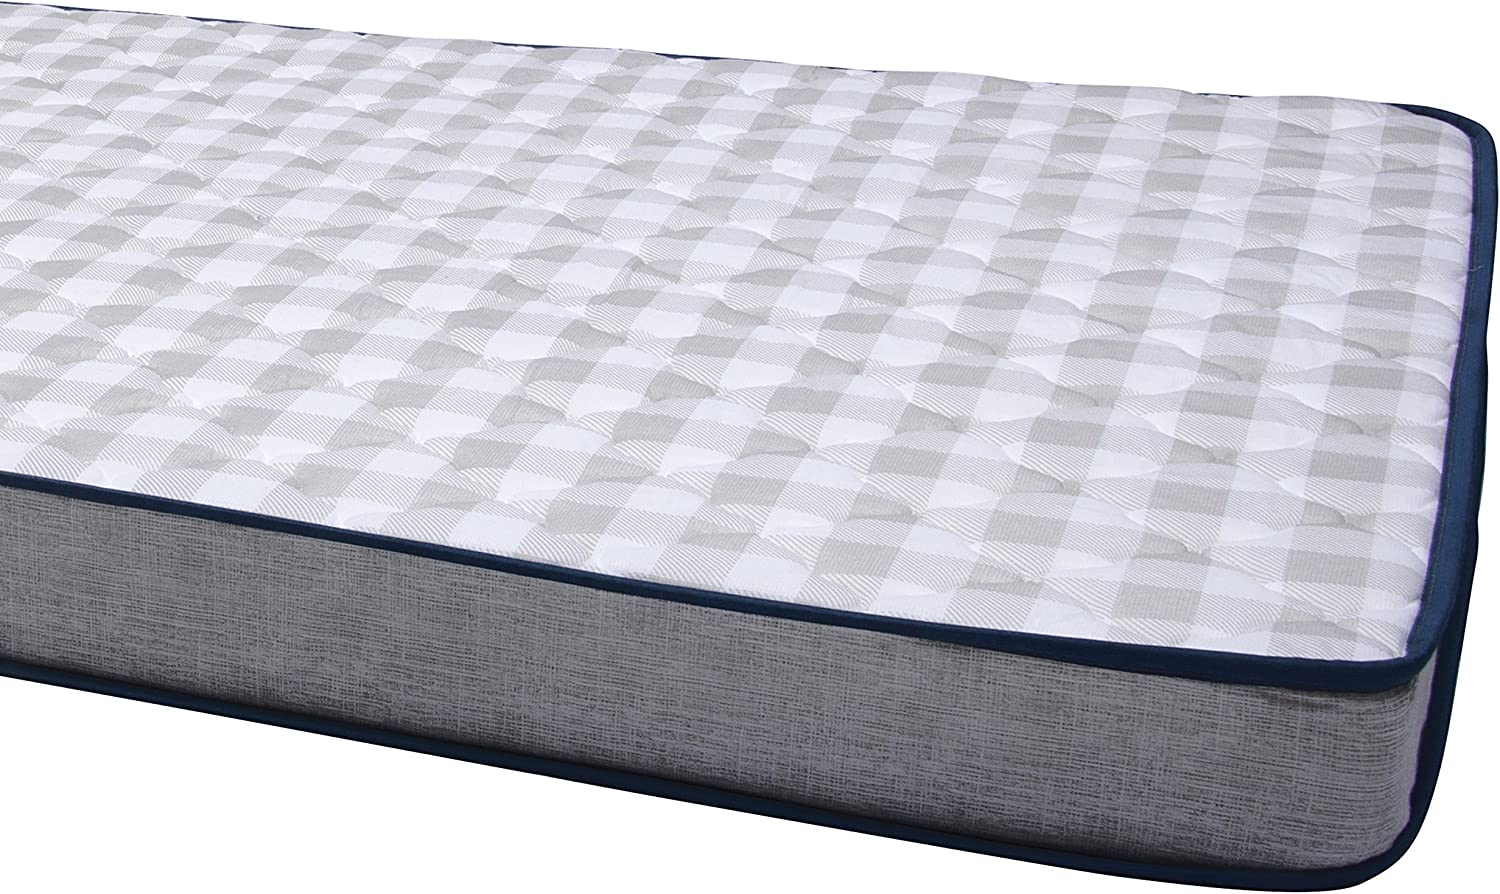 Navy Blue Twin-38 x 75 Foam Mattress Mobile InnerSpace TM-3875 RV And Truck Maximizer 7 Grey//White